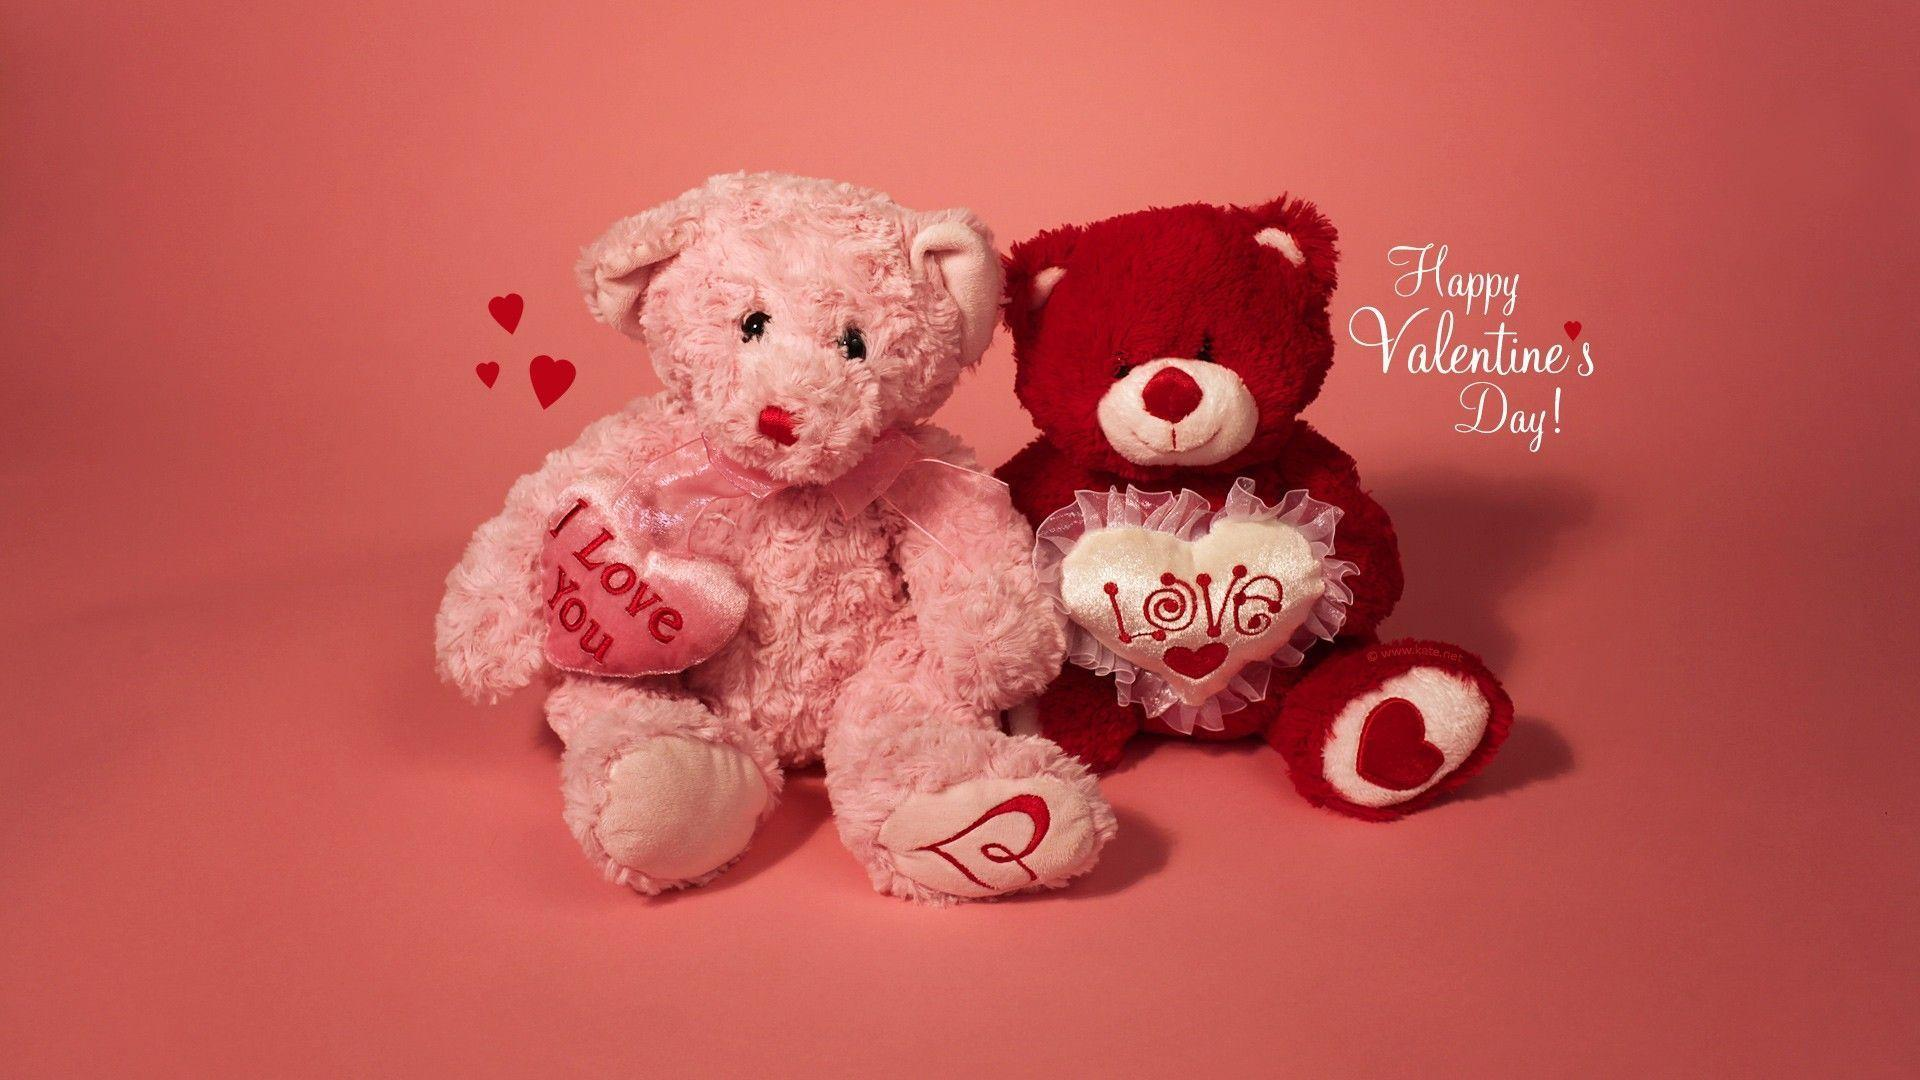 Cute Valentines Day Wallpapers   Top Cute Valentines Day 1920x1080